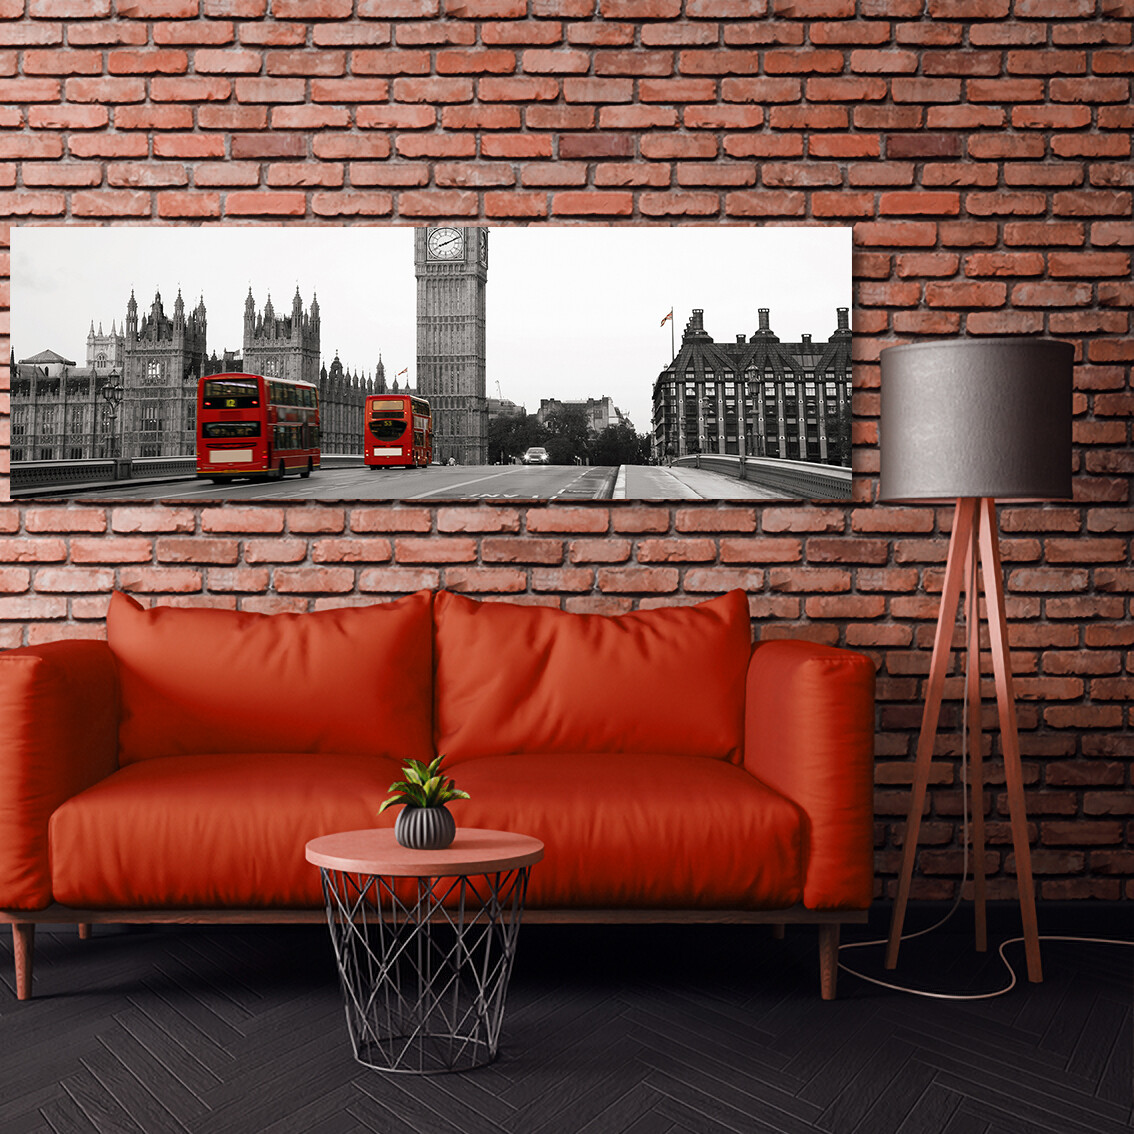 Big Ben Black and Red - Modern Luxury Wall art Printed on Acrylic Glass - Frameless and Ready to Hang